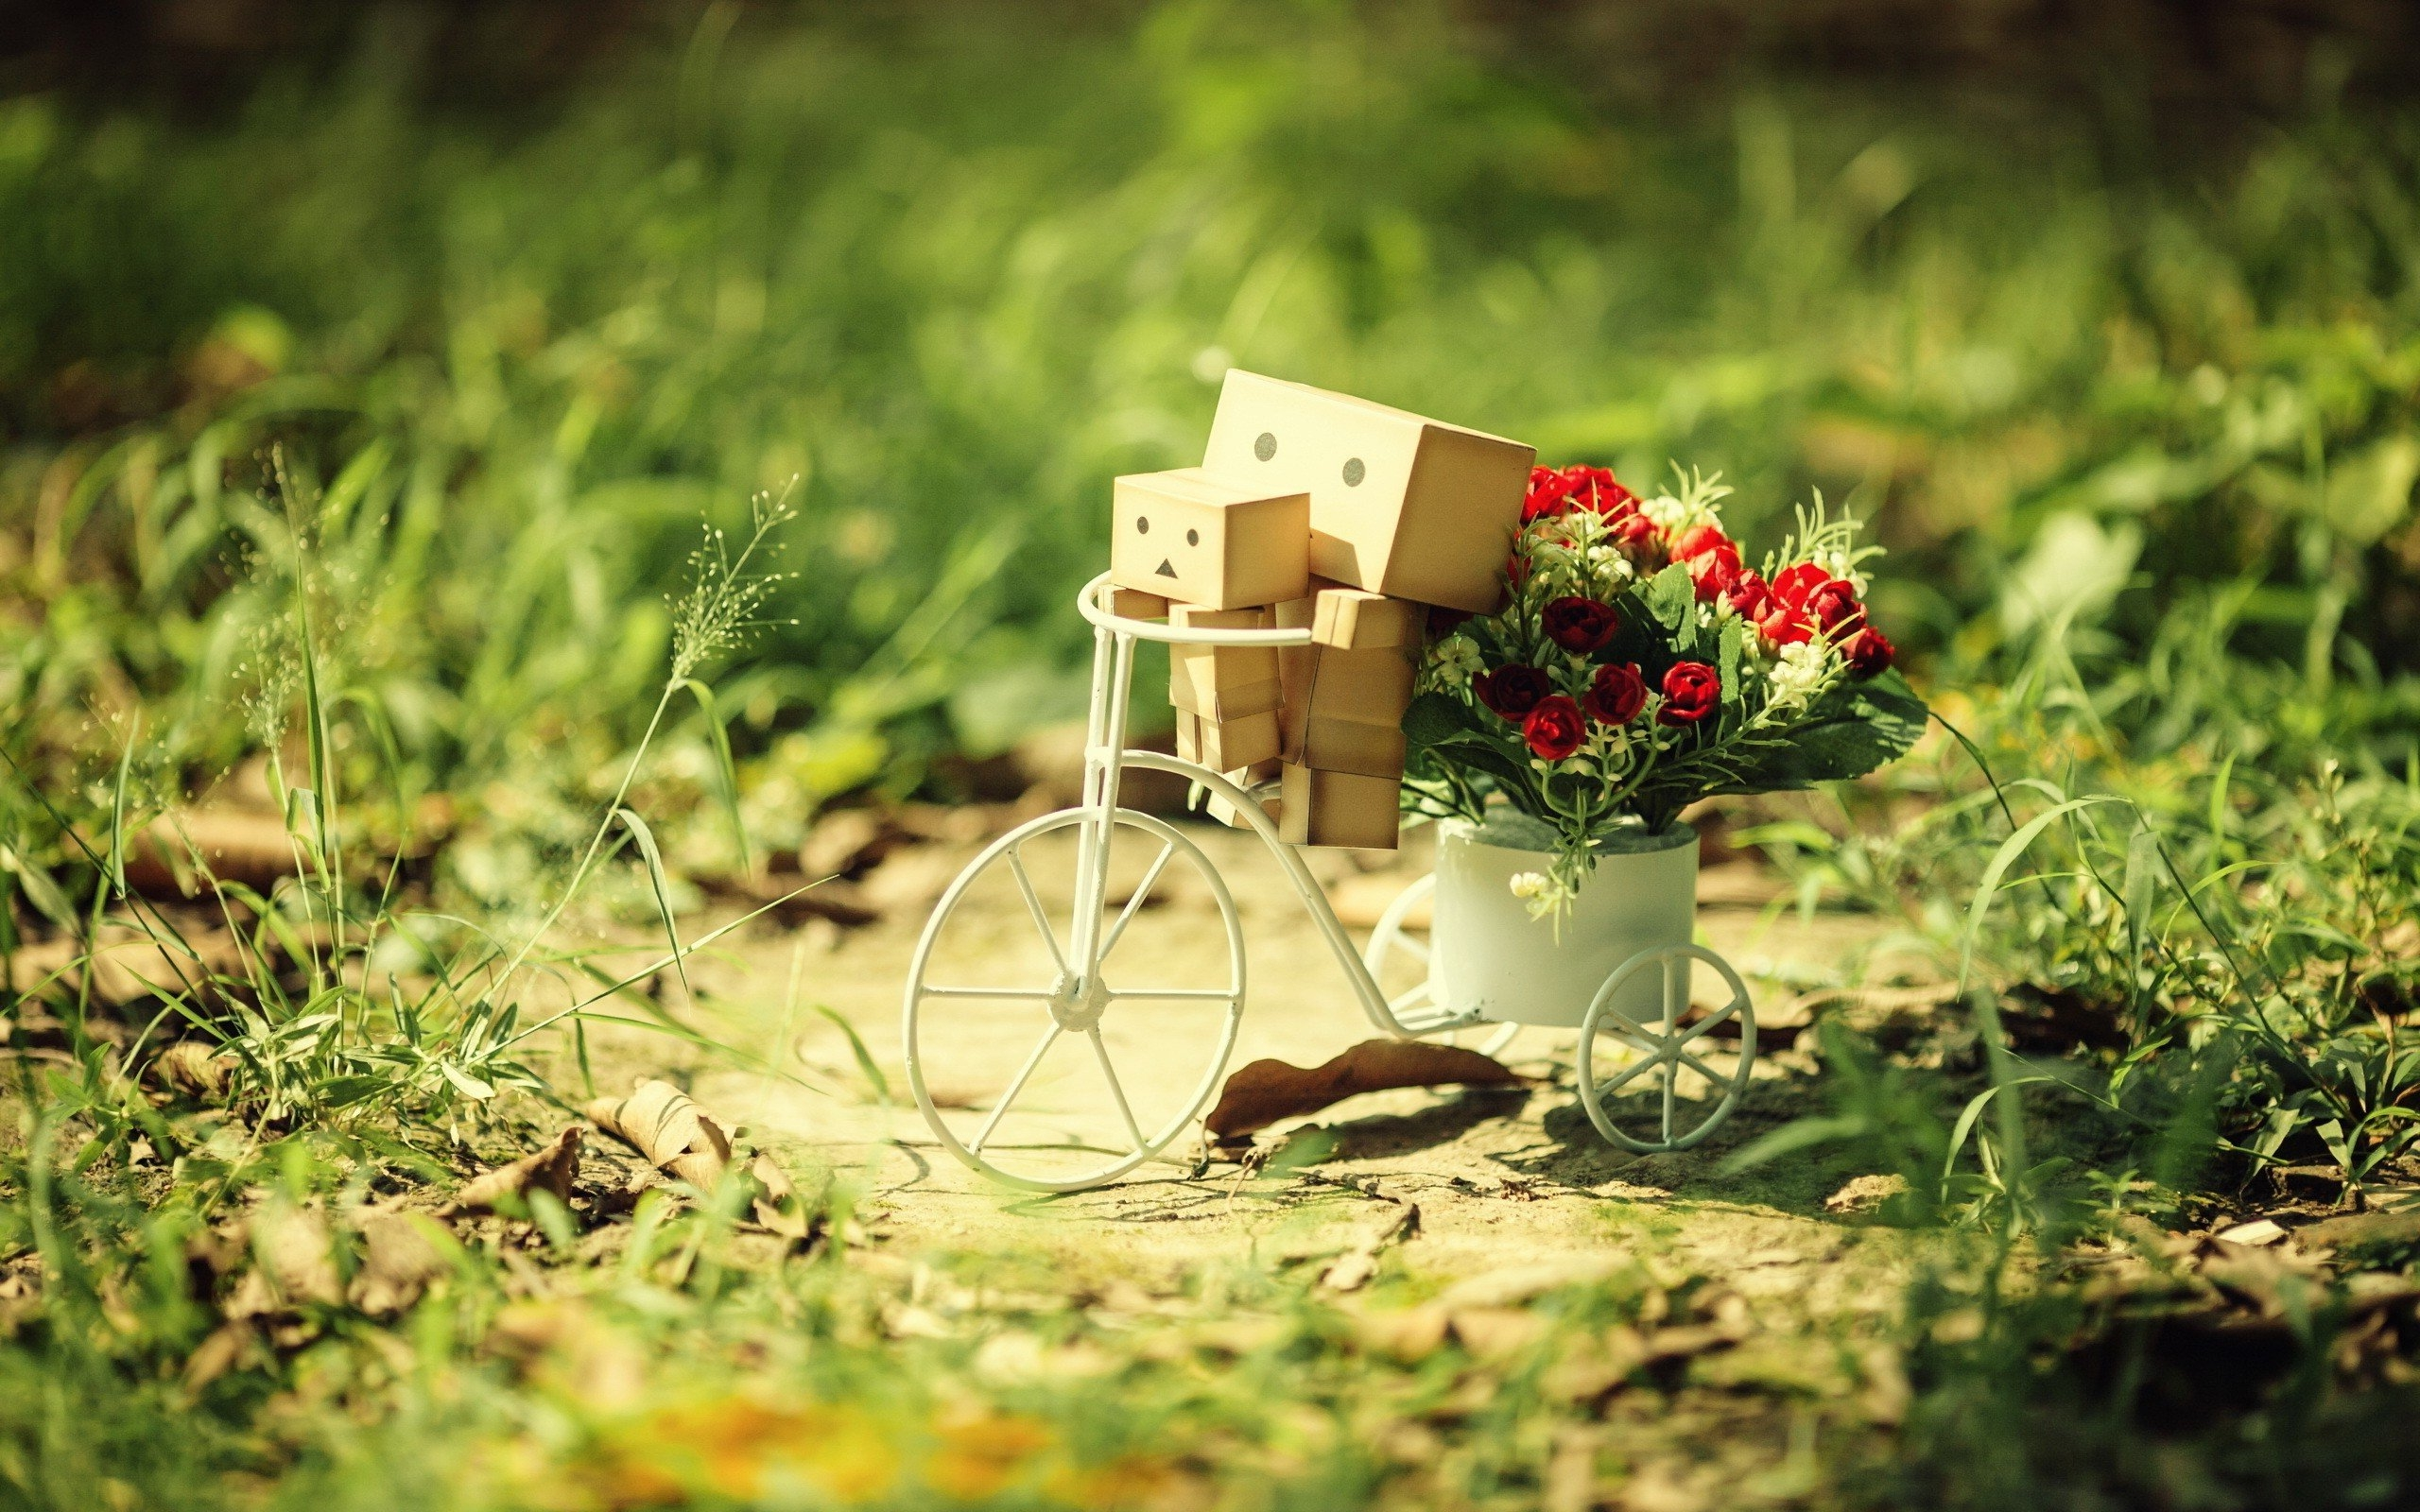 Cute Flower Wallpapers For Mobile Danbo Best Pic Hd Cute 4k Wallpapers Images